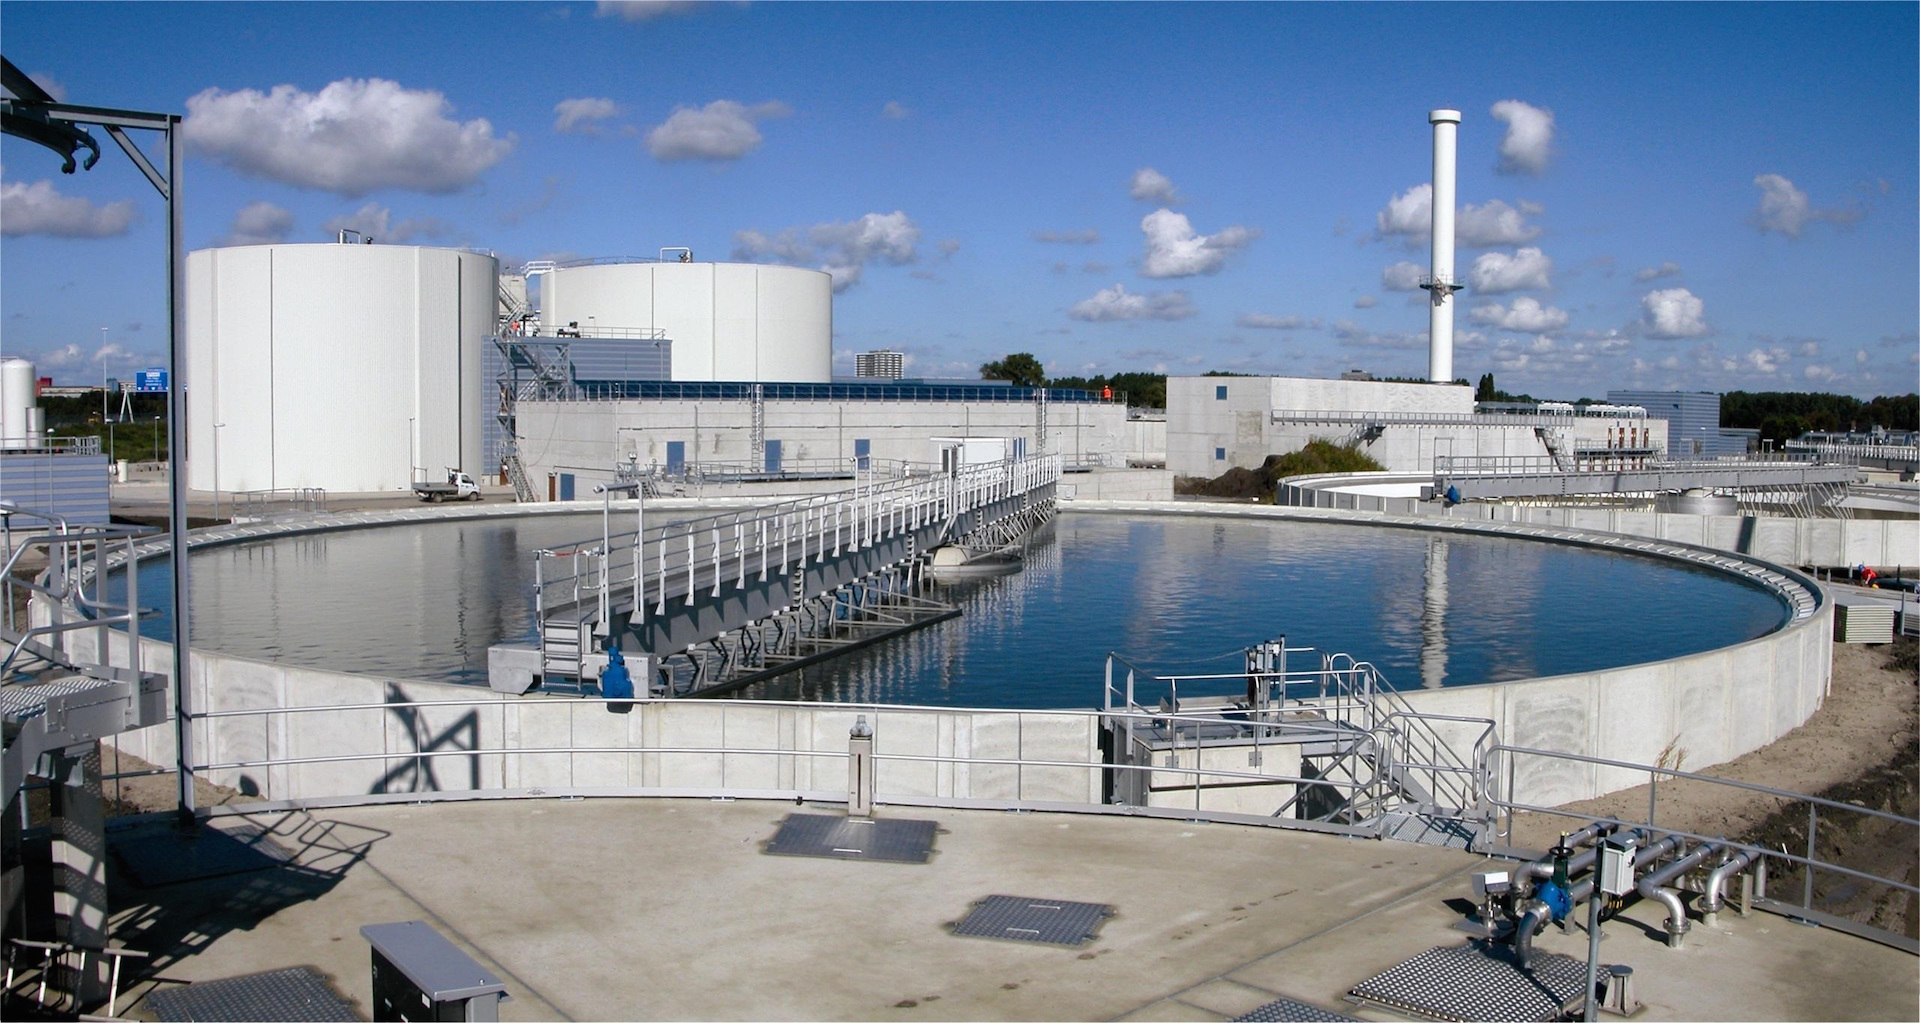 Romania fails to comply with EU rules on urban waste water treatment